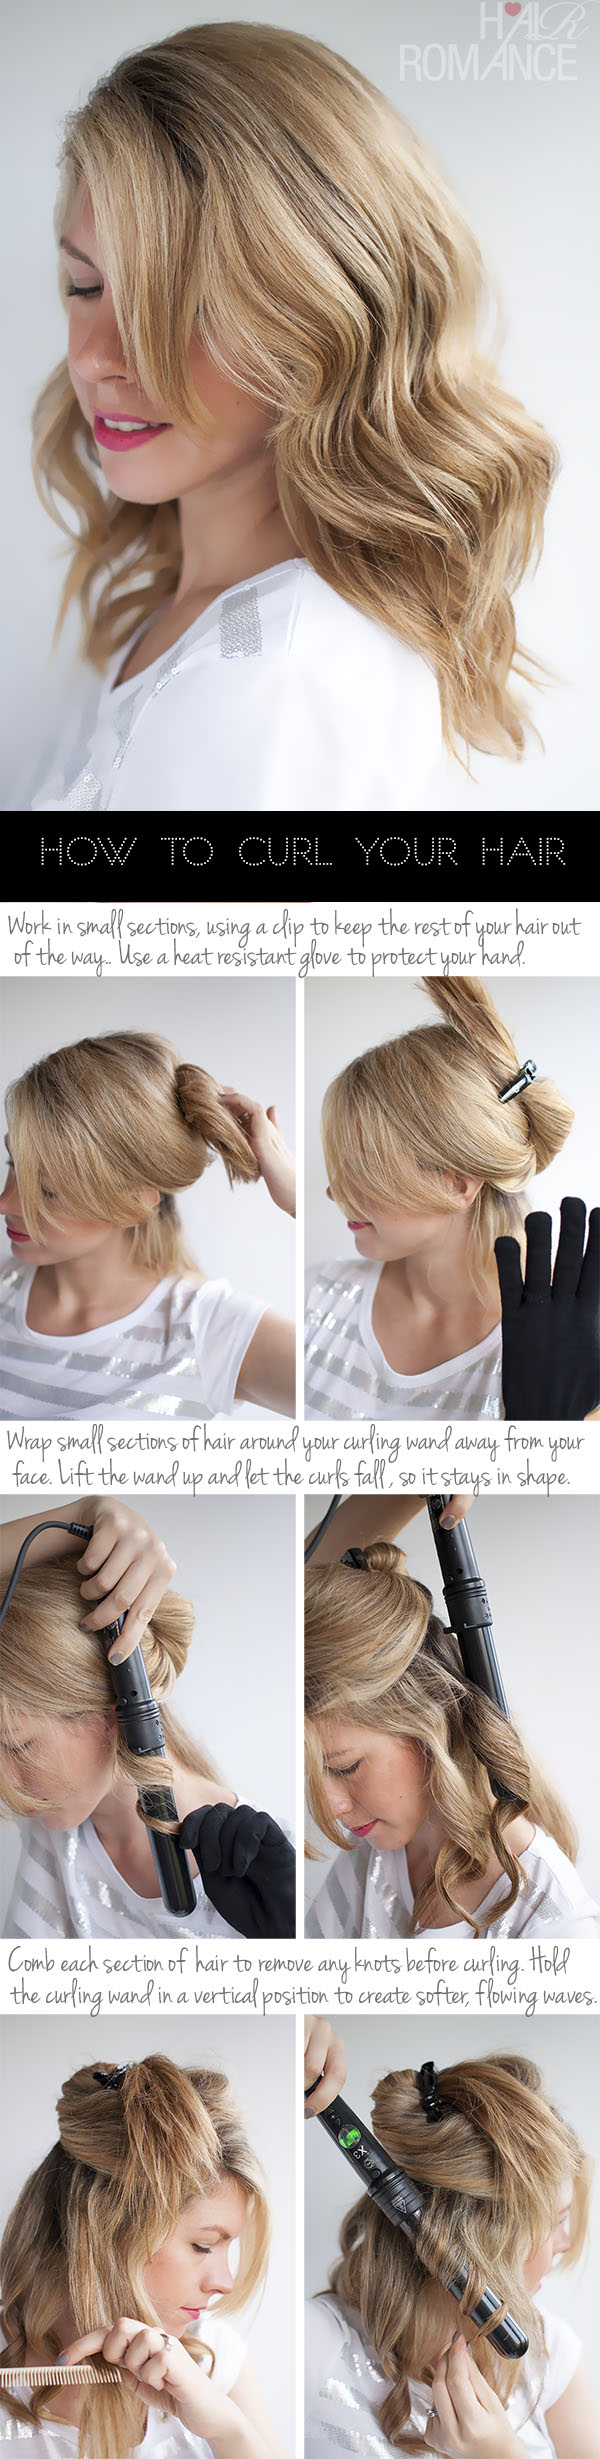 How To Curl Your Hair To Create Soft Loose Waves Using H2d Curling